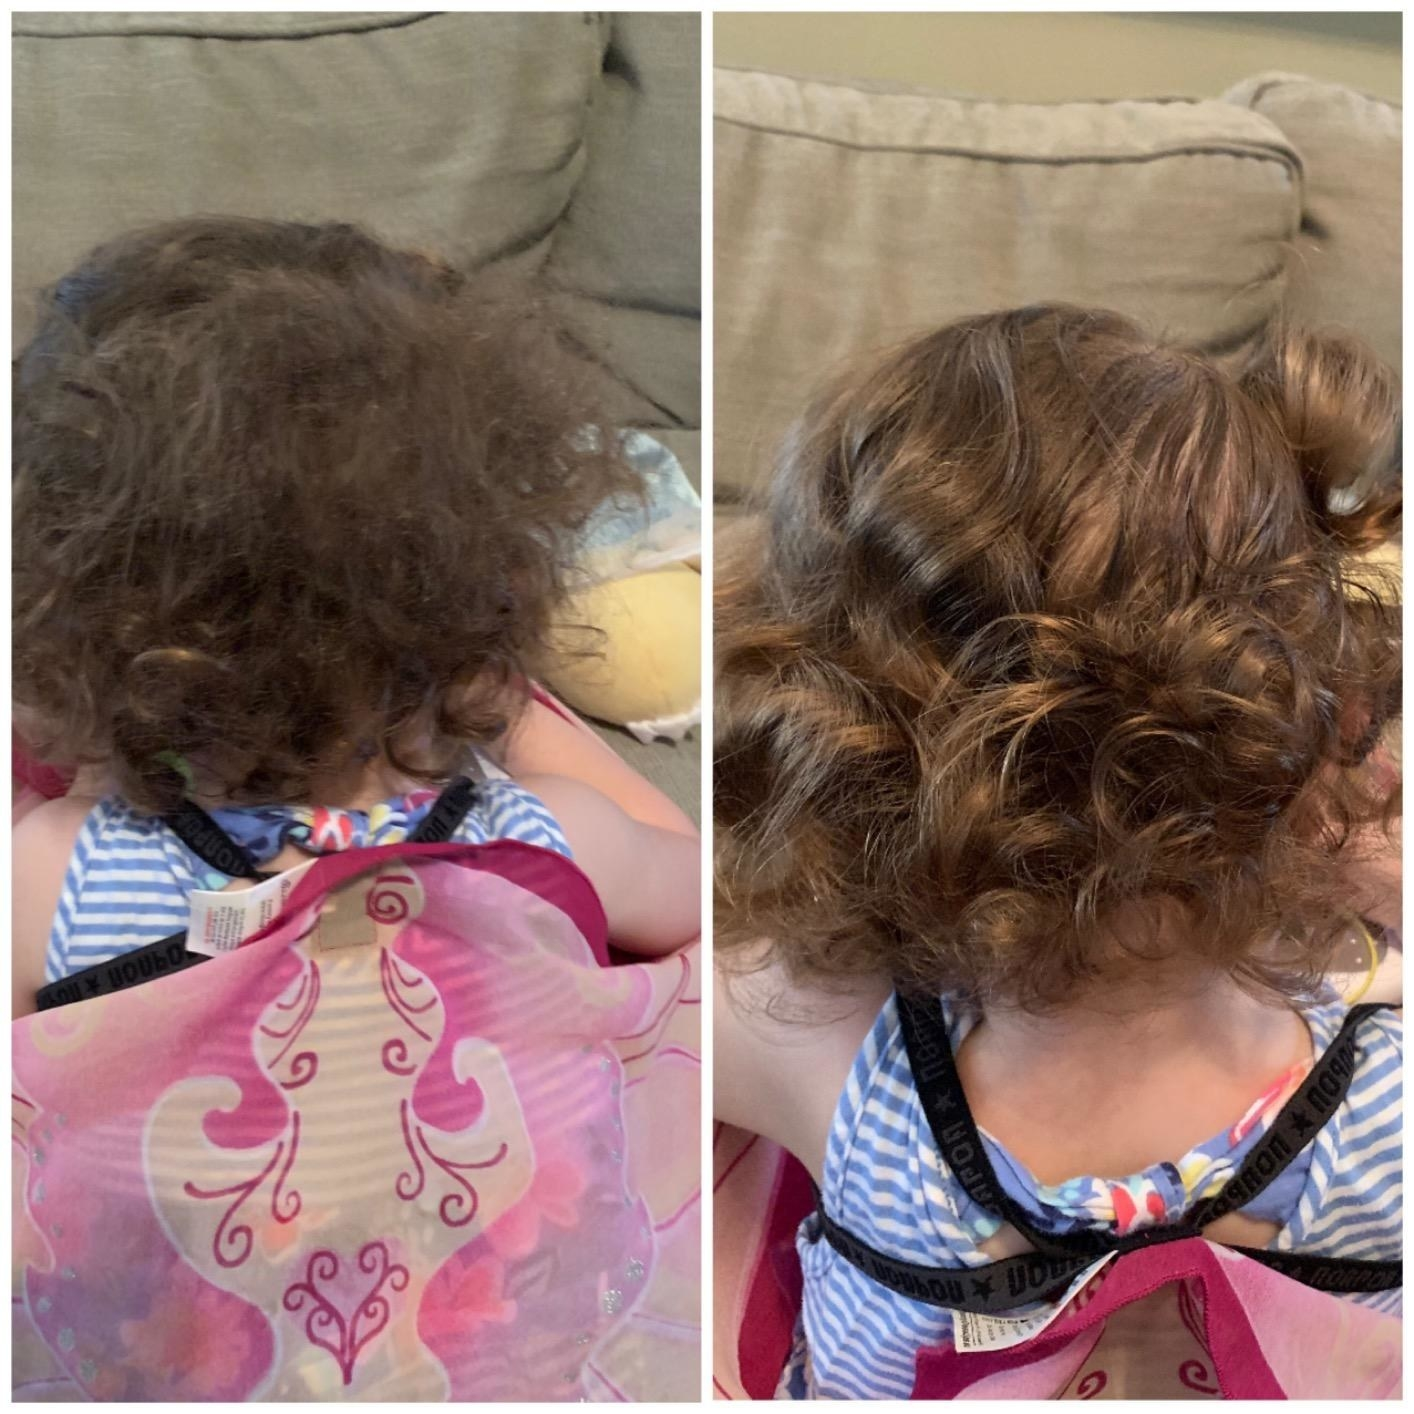 Reviewer's before photo showing their child's curly hair before using the spray and after photo showing glossy curls with the spray